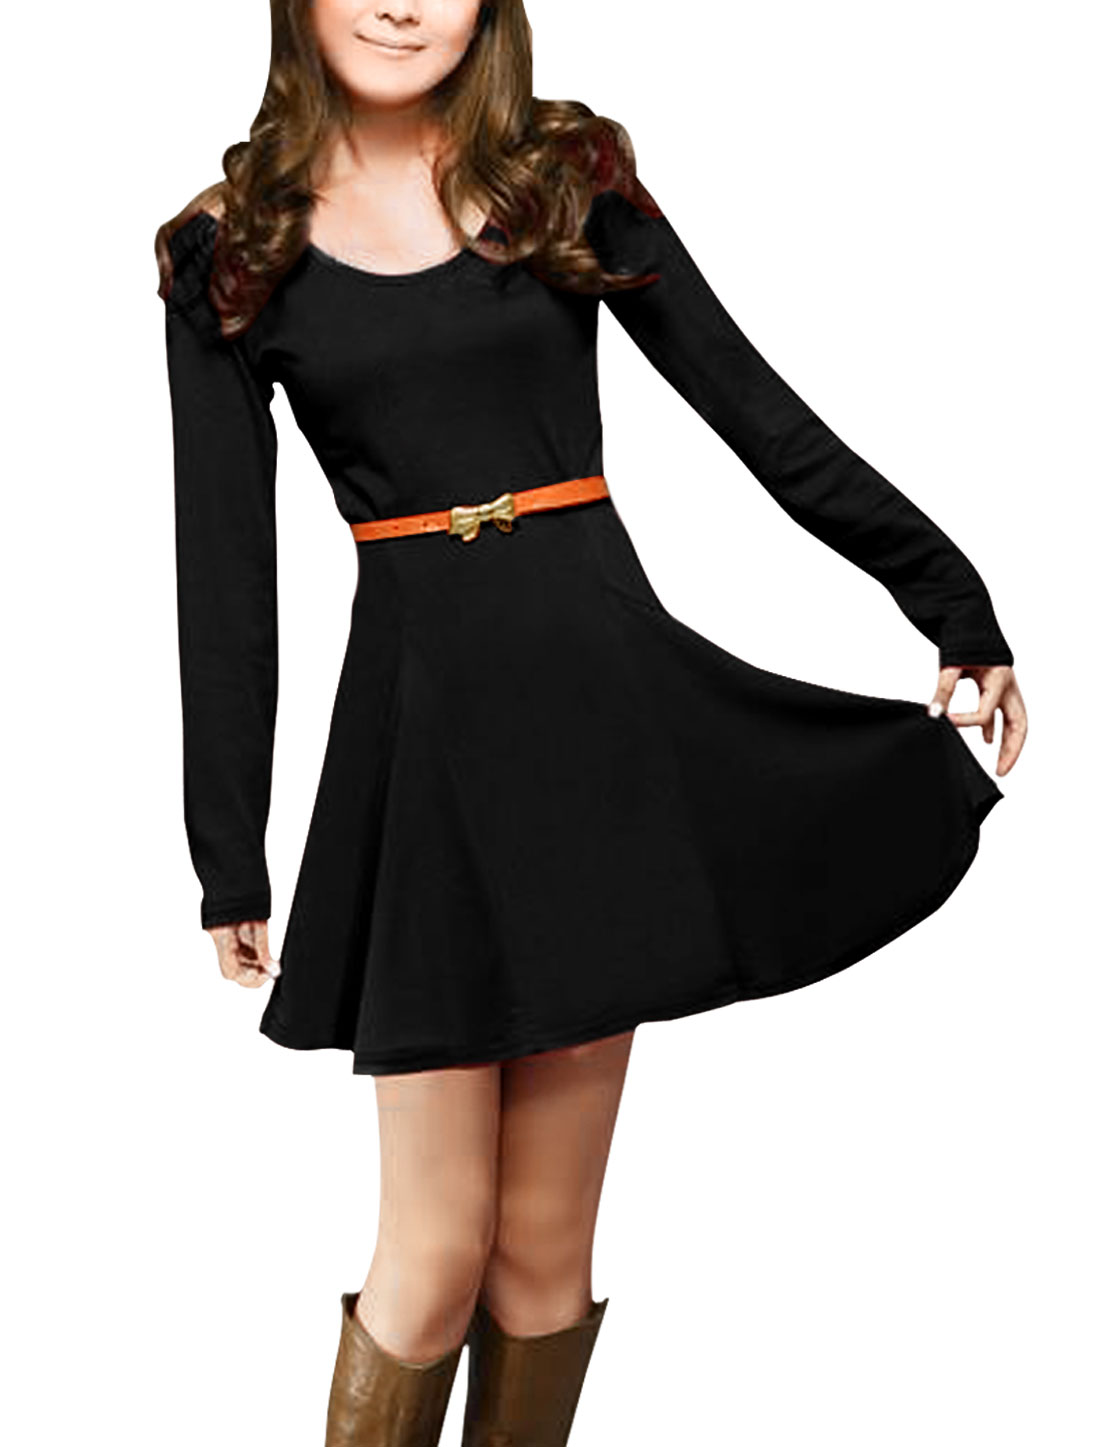 Ladies Long Sleeves Scoop Neck Stretchy Dress w Belt Black S